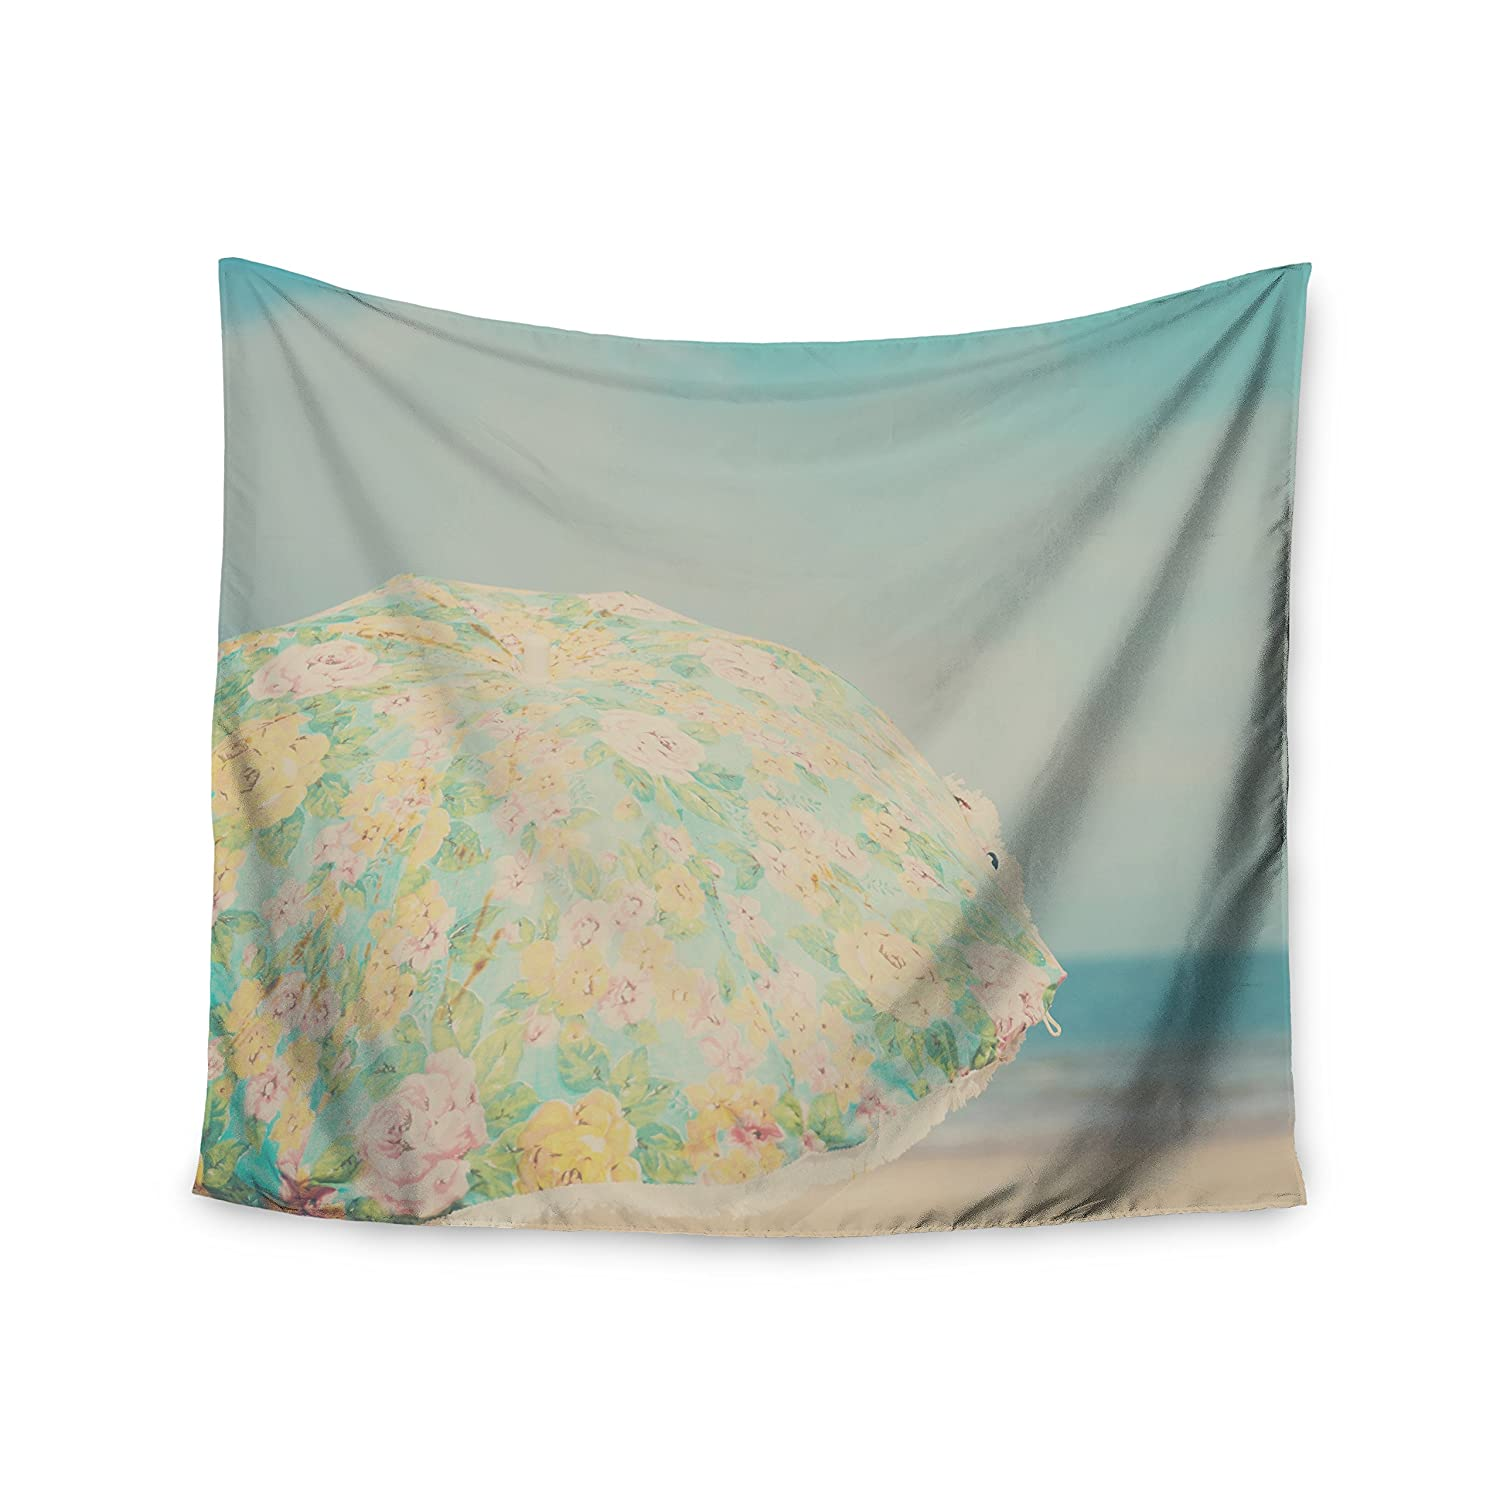 Kess InHouse Laura Evans A Summer Afternoon Blue Teal Wall Tapestry 51 X 60